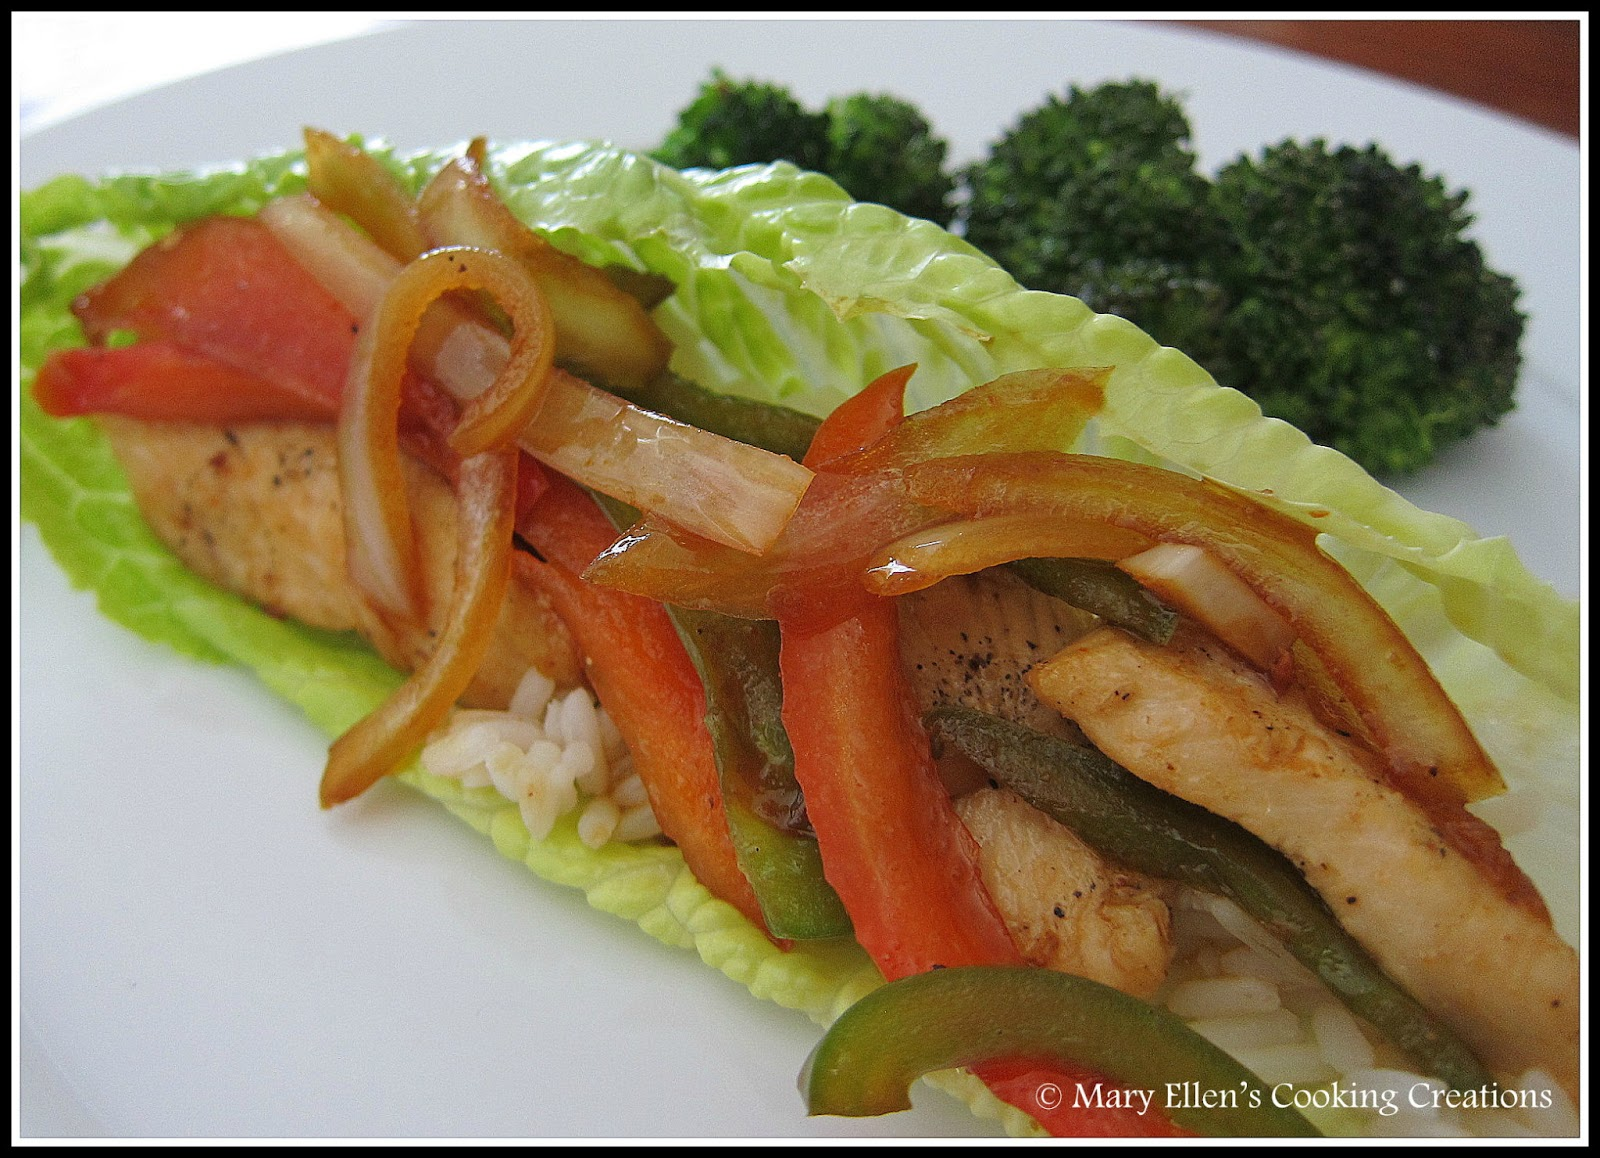 Mary Ellen's Cooking Creations: Chicken Stir-Fry Lettuce Wraps